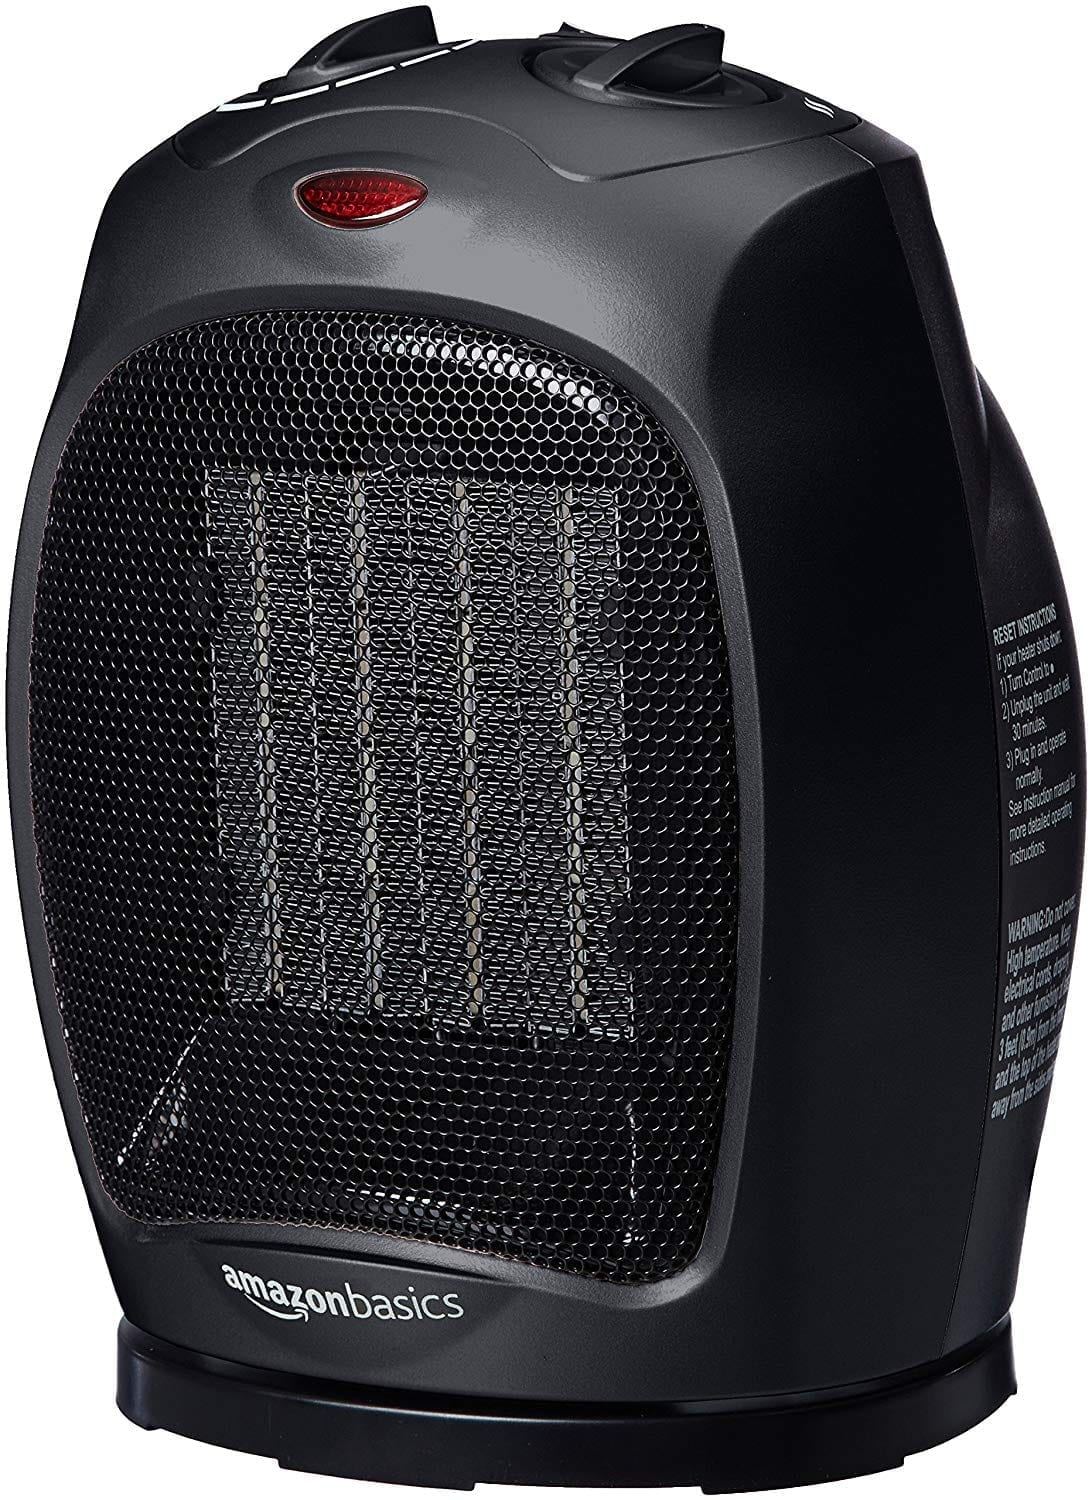 AmazonBasics 1500 Watt Oscillating Ceramic Space Heater with Adjustable Thermostat - Blackx